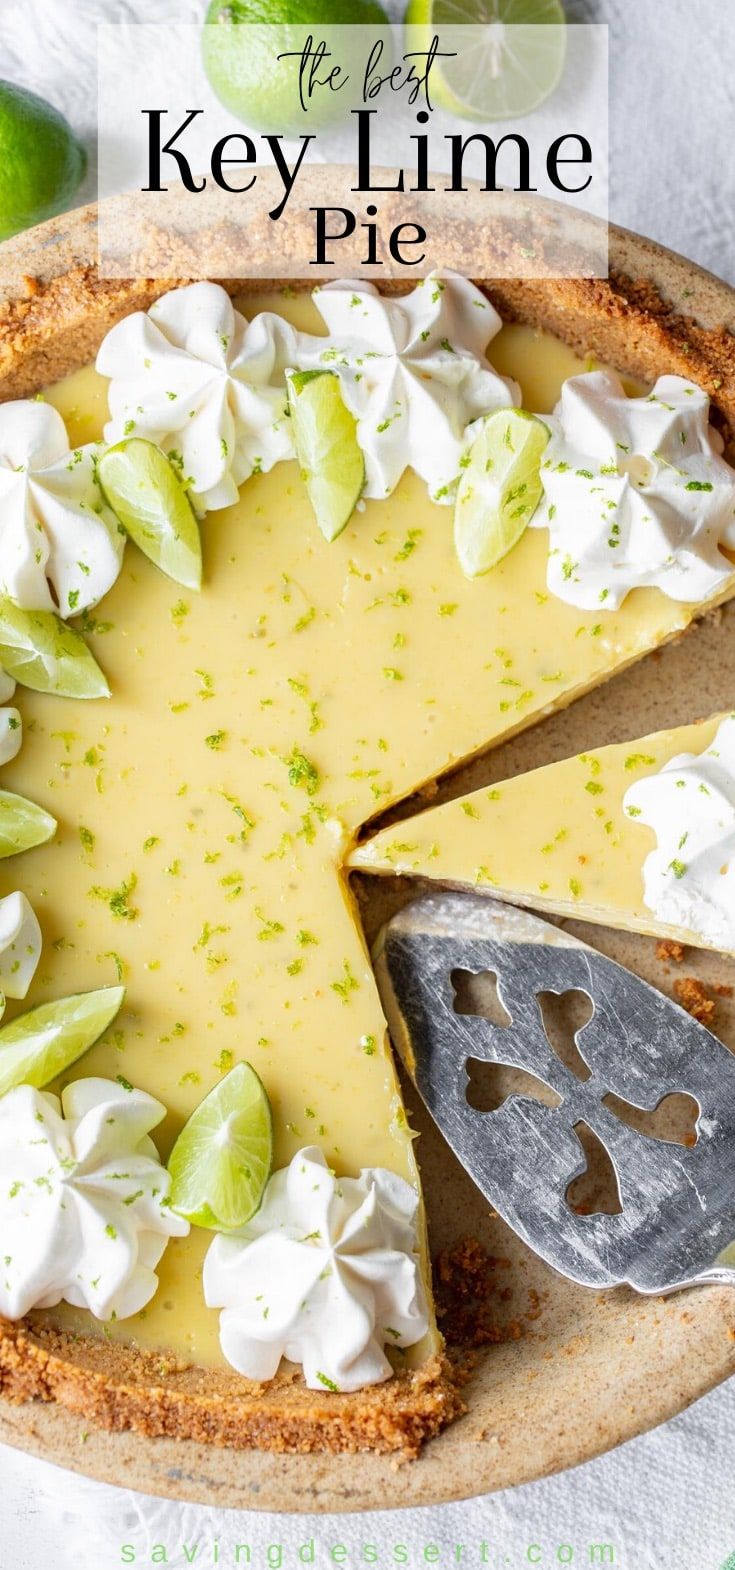 A sliced key lime pie decorated with fresh key limes and whipped cream